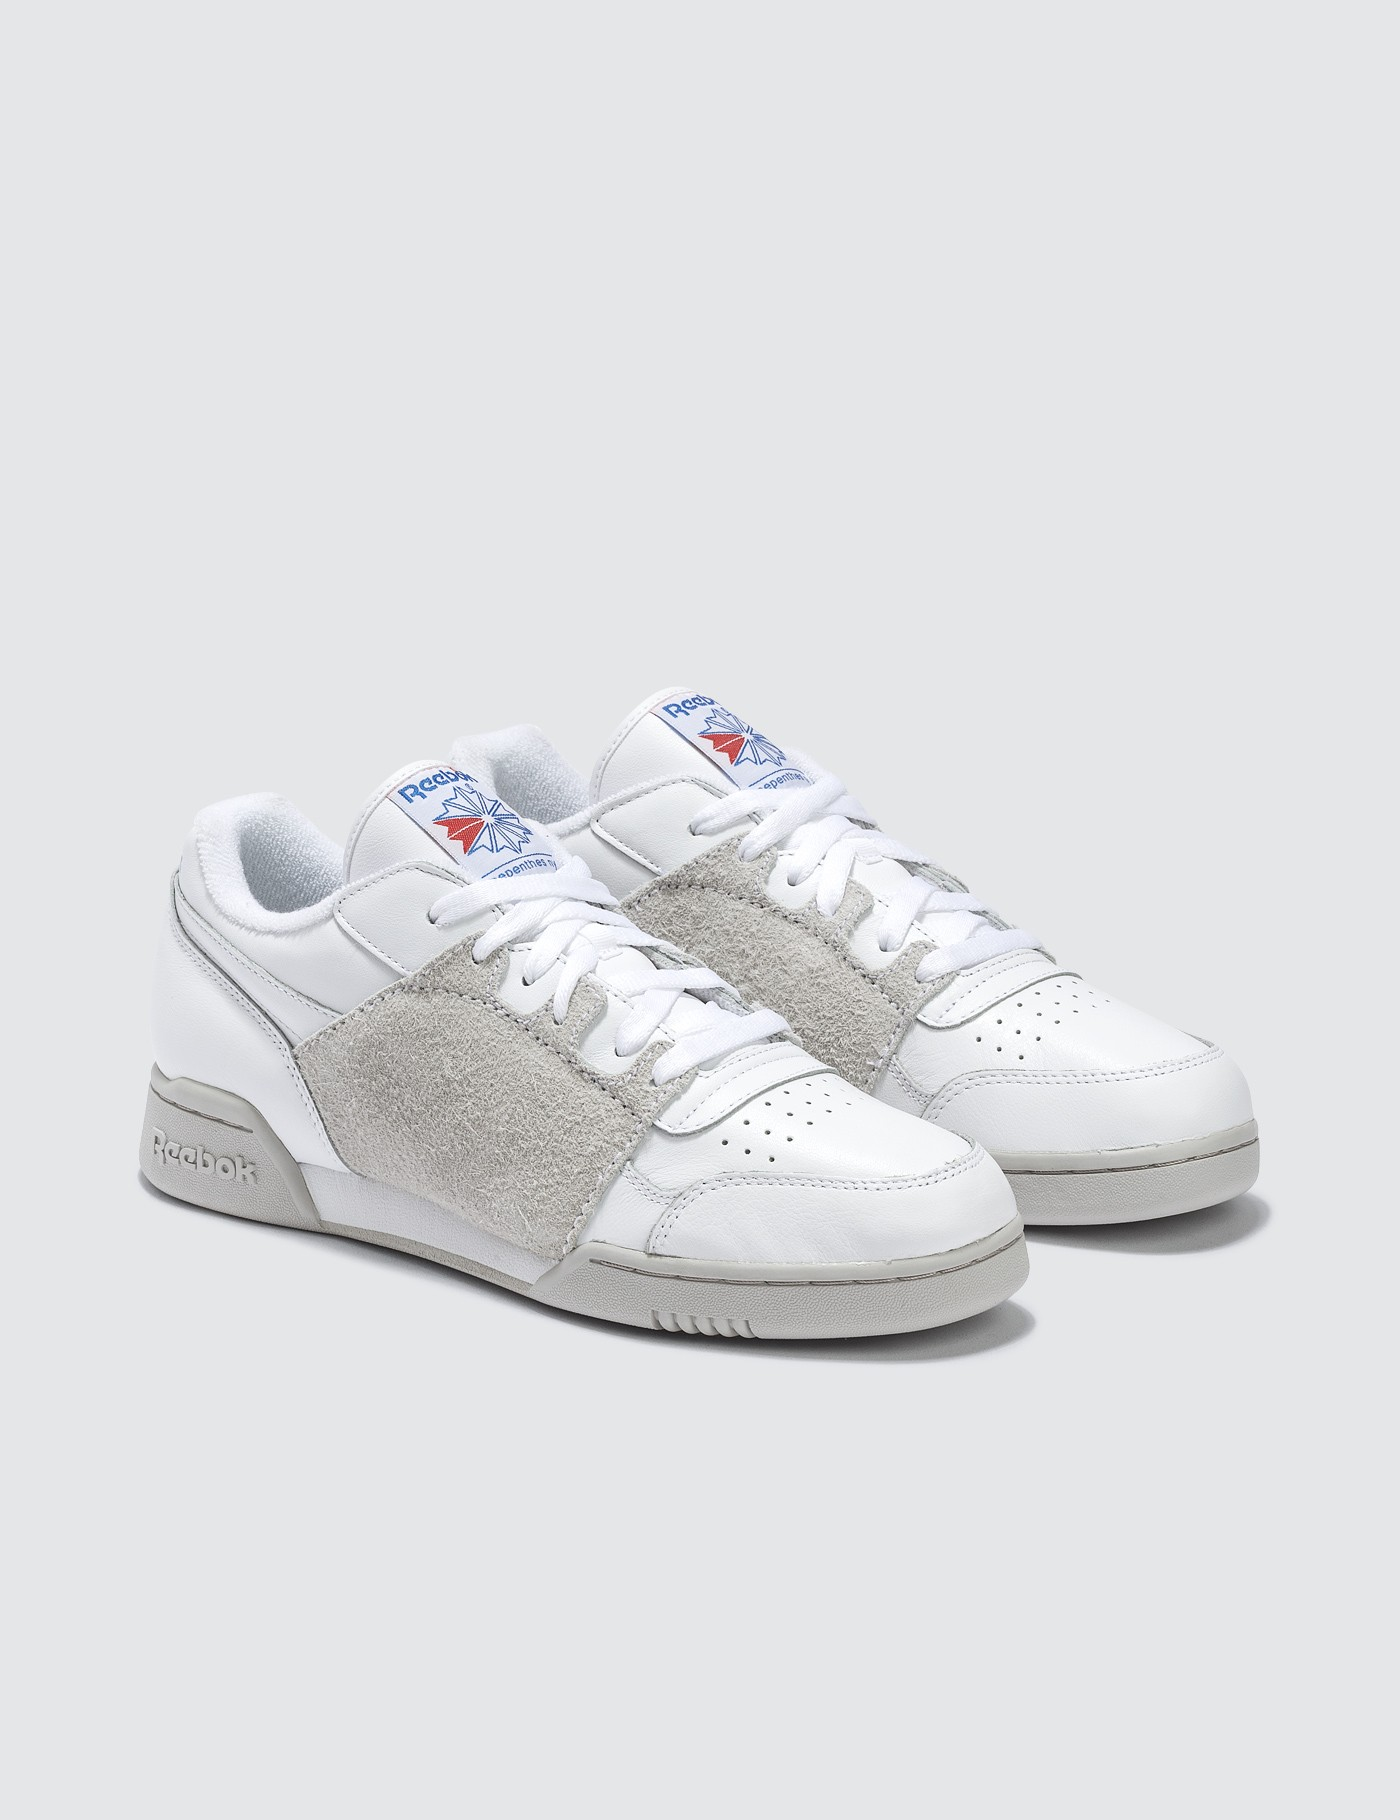 1c4005c2ad9 Buy Original Reebok Nepenthes x Workout Plus at Indonesia